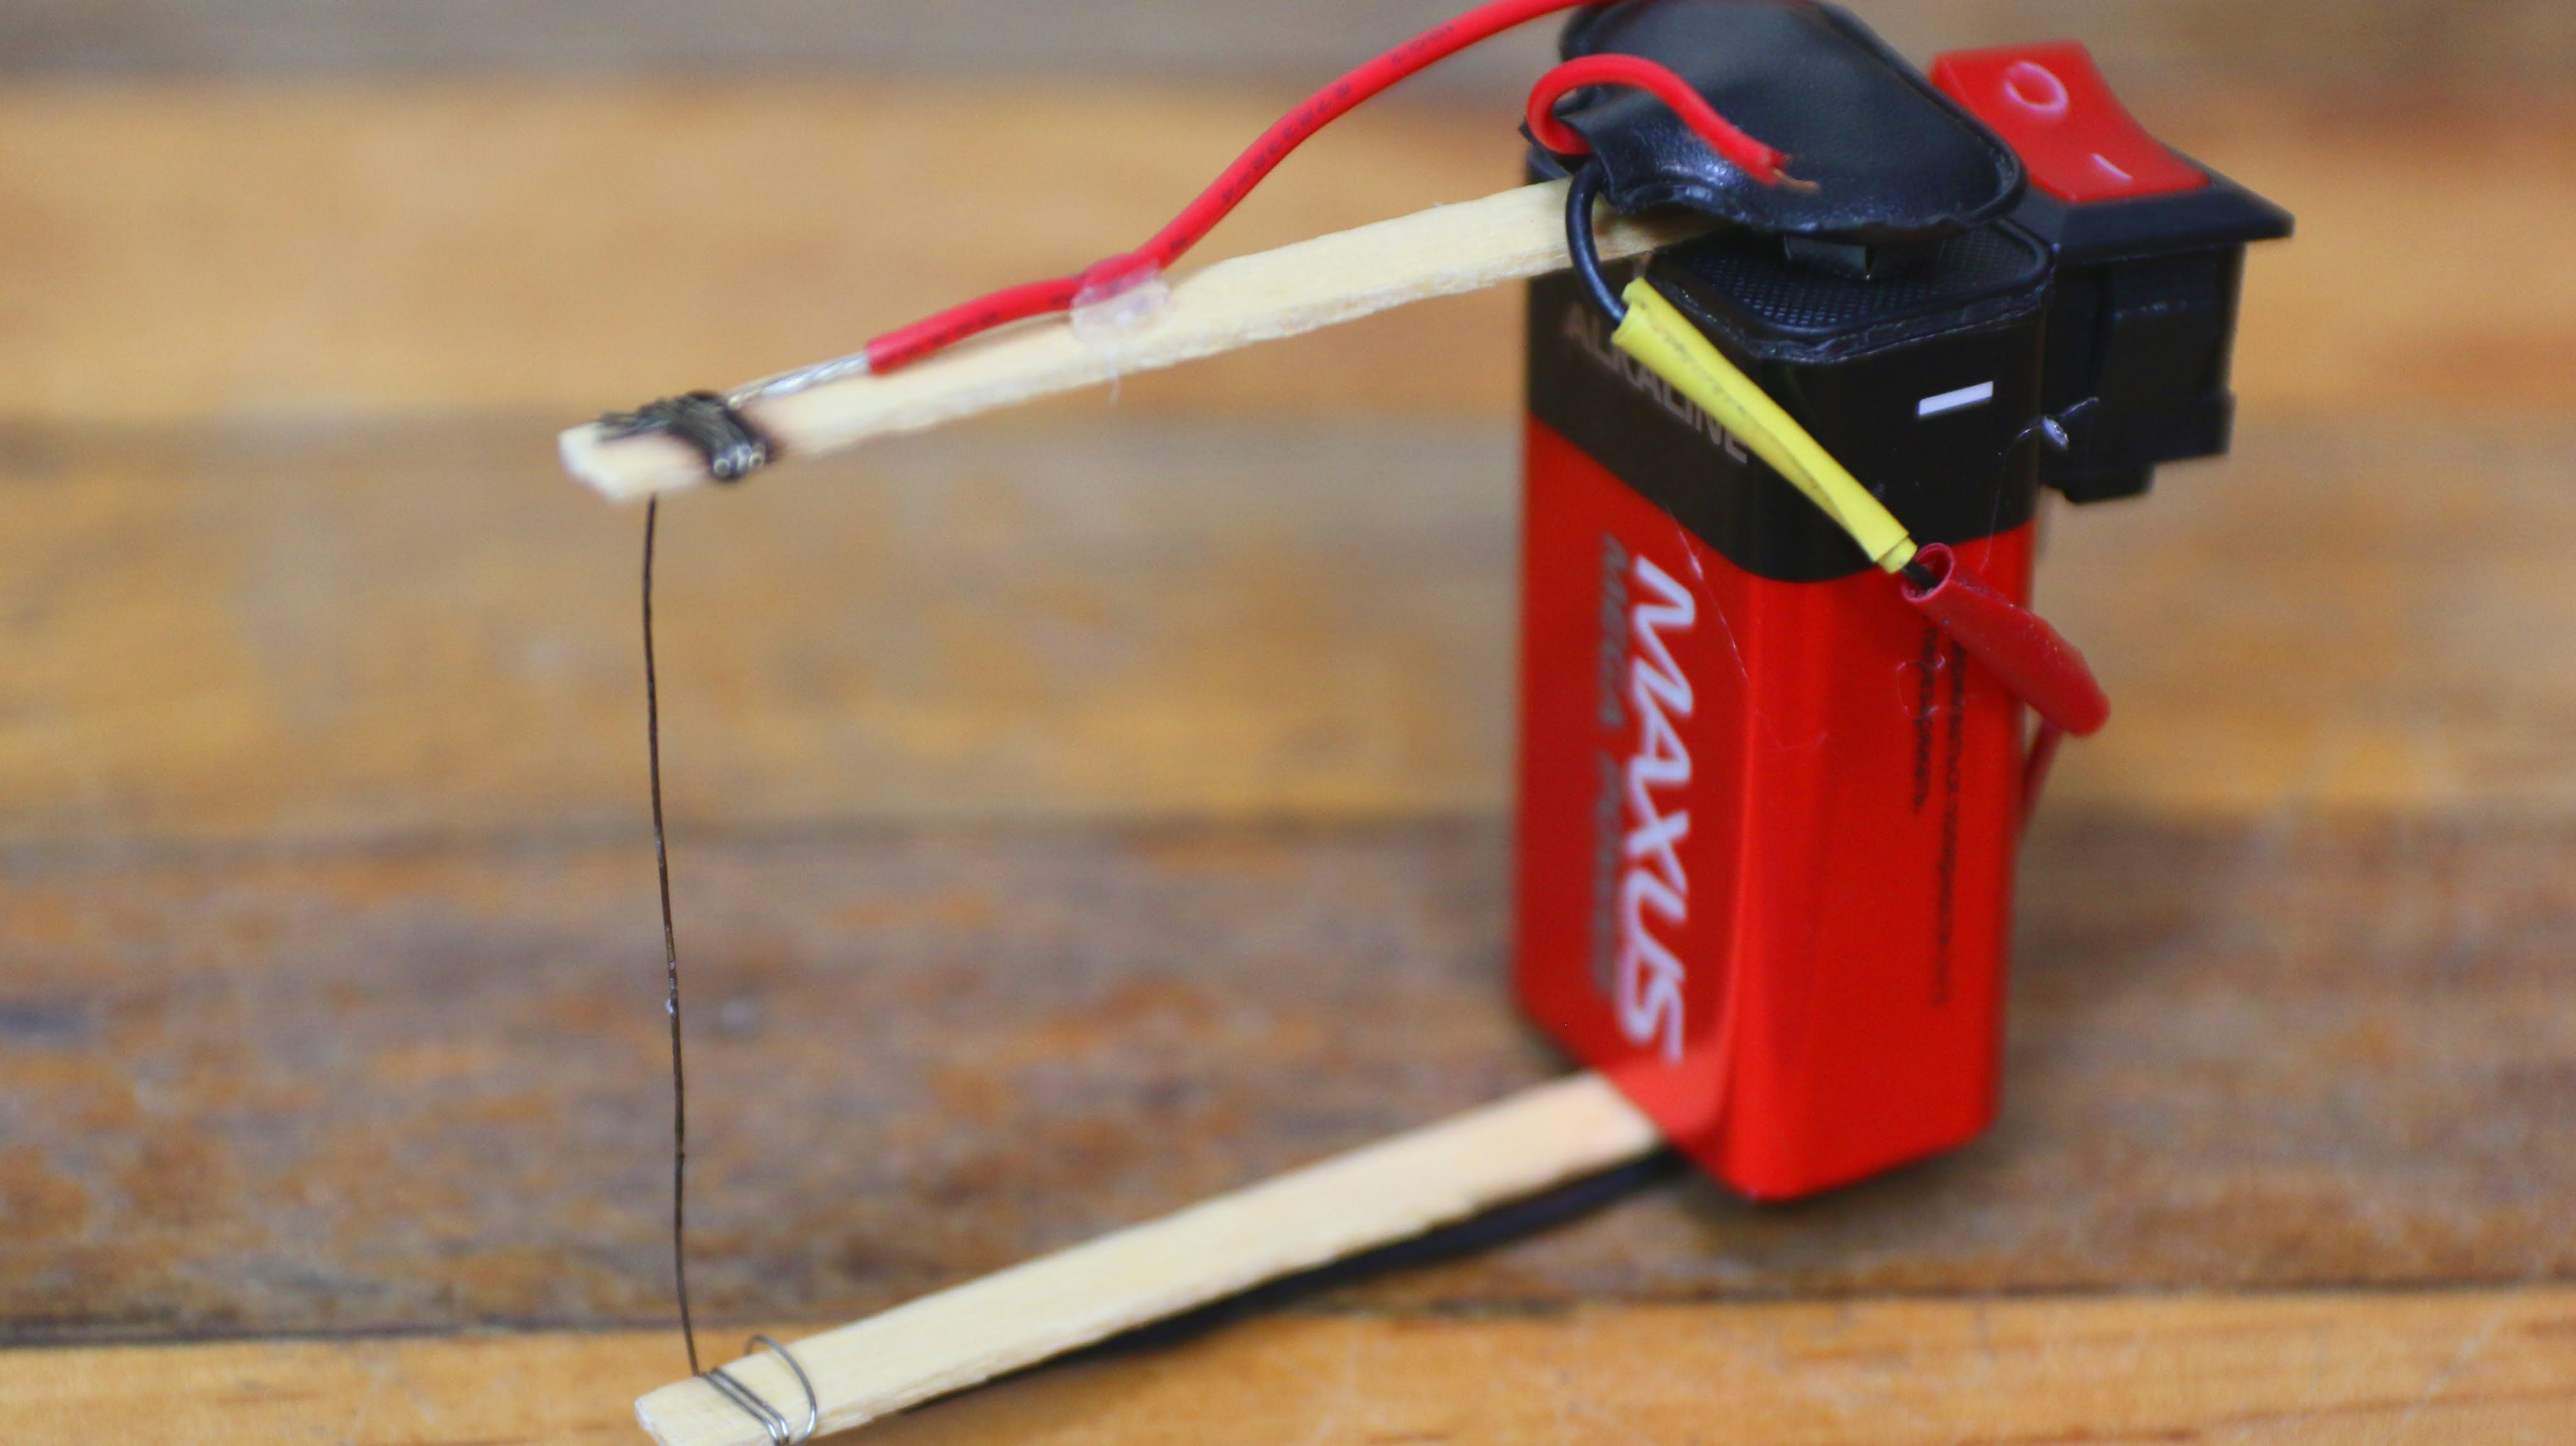 how to build a simple diy plastic foam cutter using a nine volt battery and some wire [ 4096 x 2300 Pixel ]